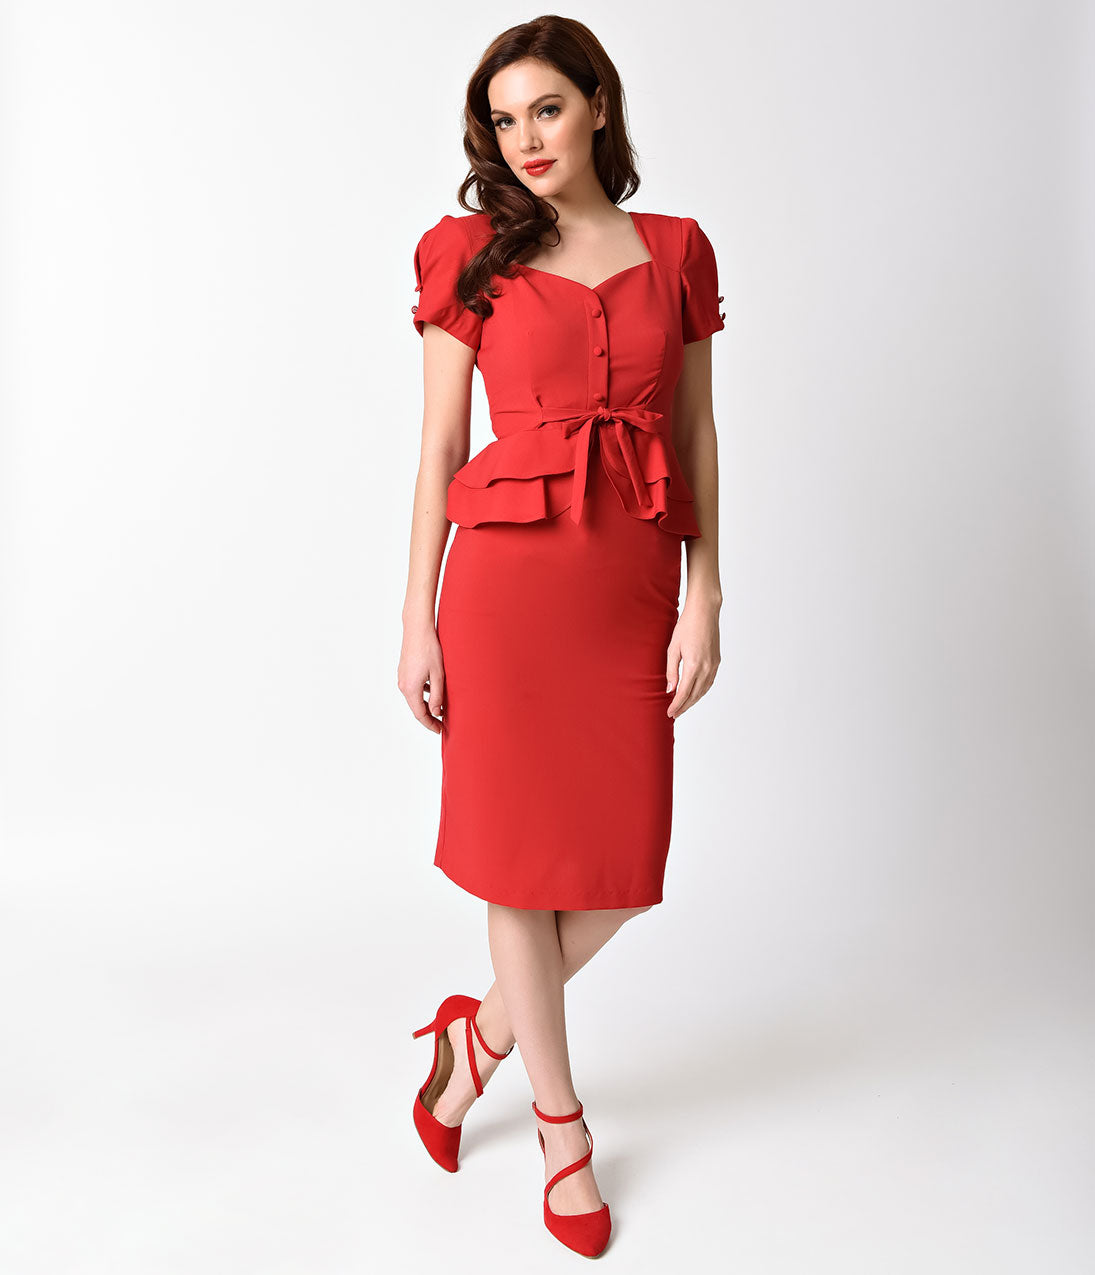 1940s Evening, Prom, Party, Cocktail Dresses & Ball Gowns Stop Staring 1940s Style Red Short Sleeve Rosemary Pencil Dress $82.00 AT vintagedancer.com